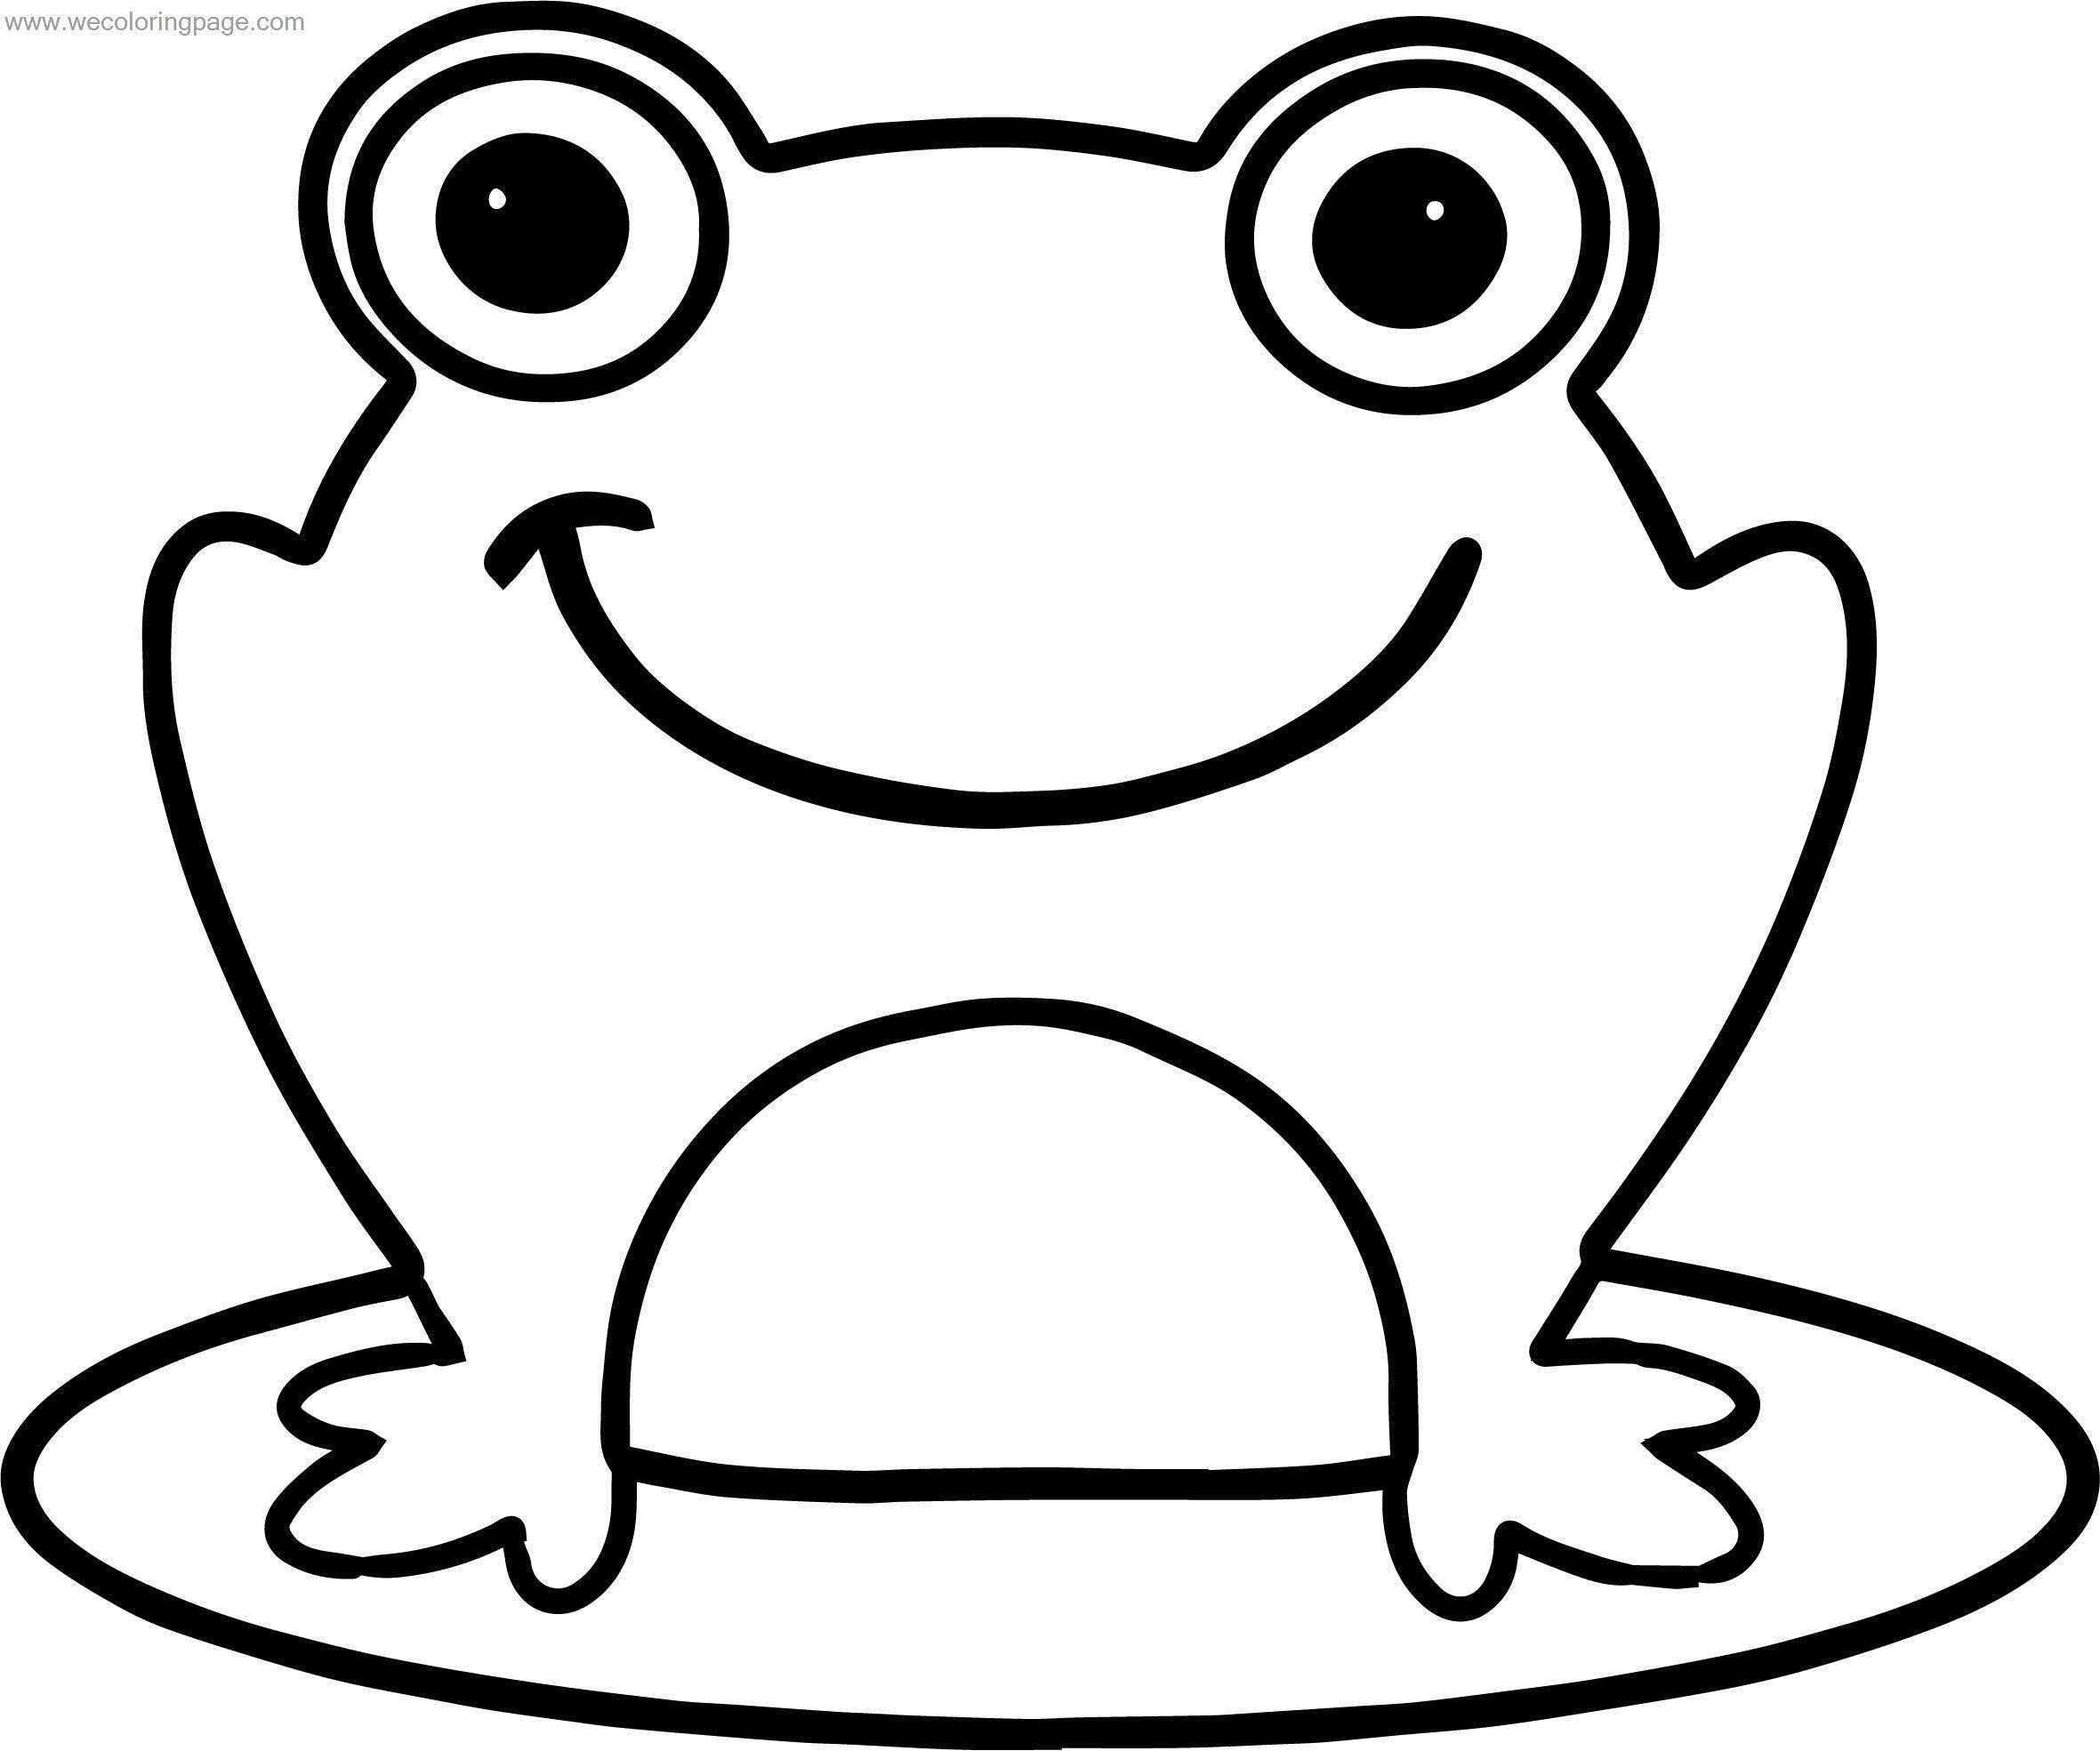 bold line coloring pages | Frog Smile Bold Line Coloring Page | Wecoloringpage.com